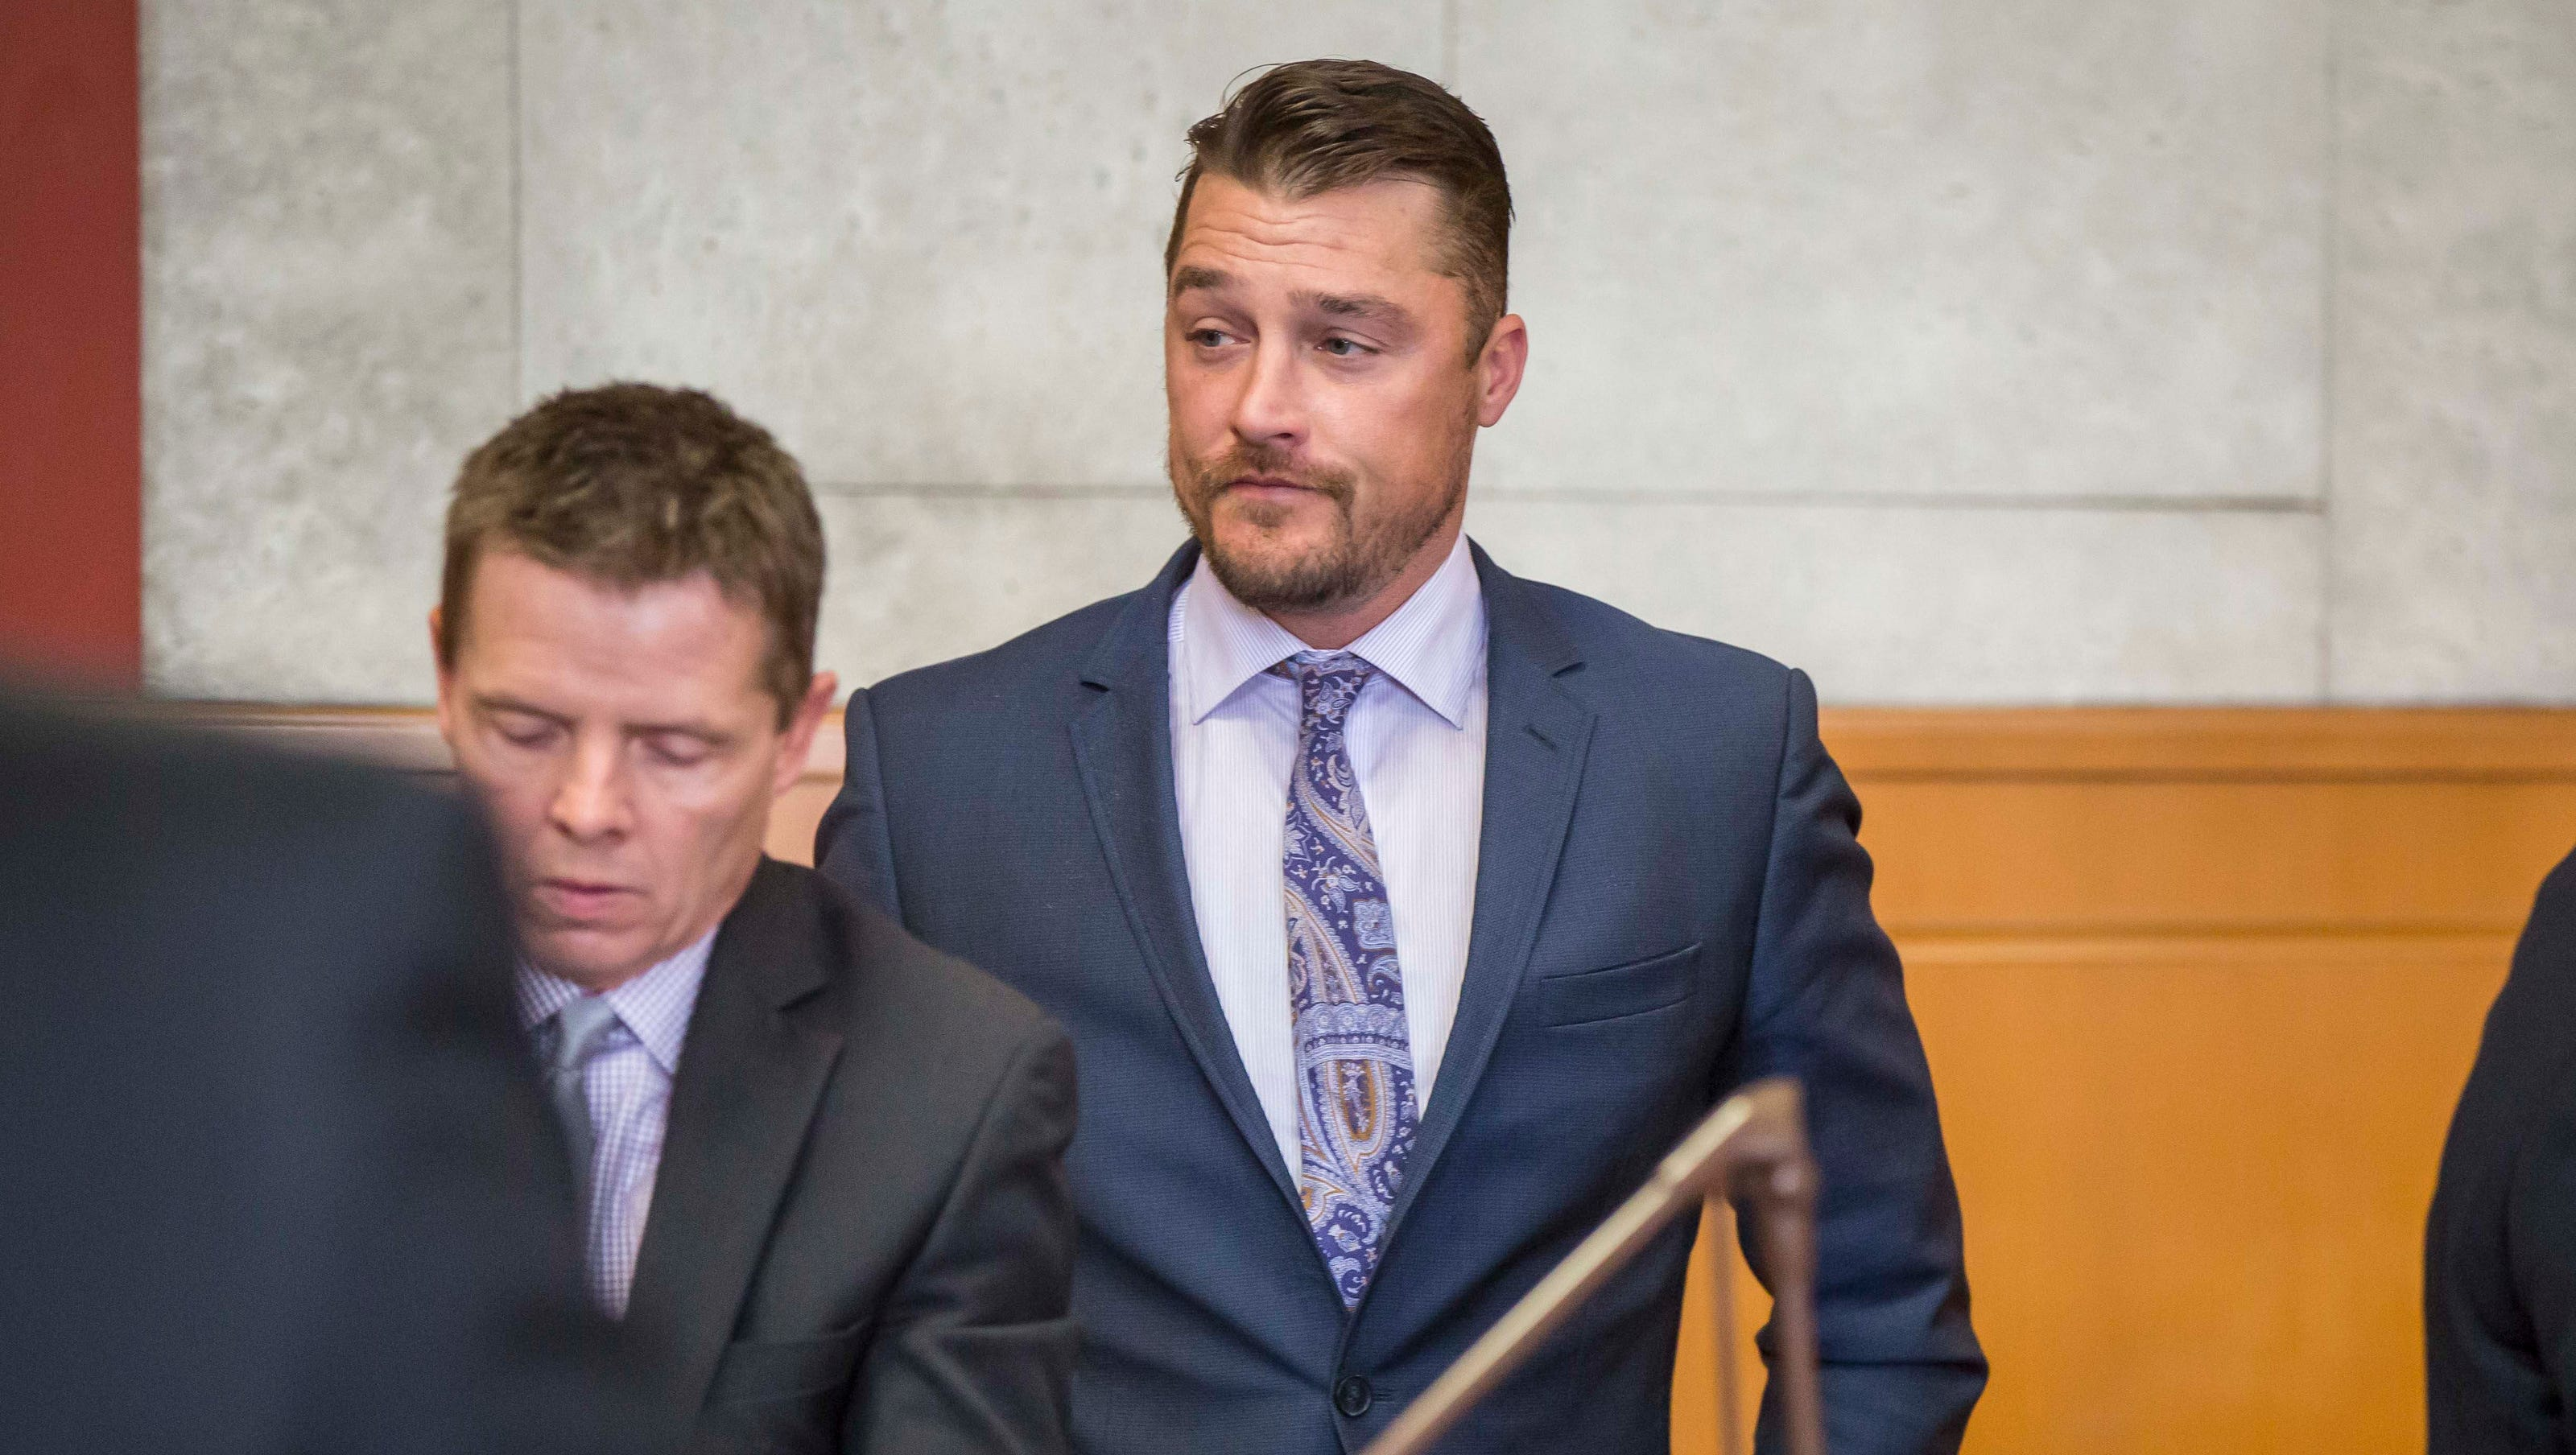 Chris Soules: 'Irreparable damage' will be done if Iowa Supreme Court doesn't take up case